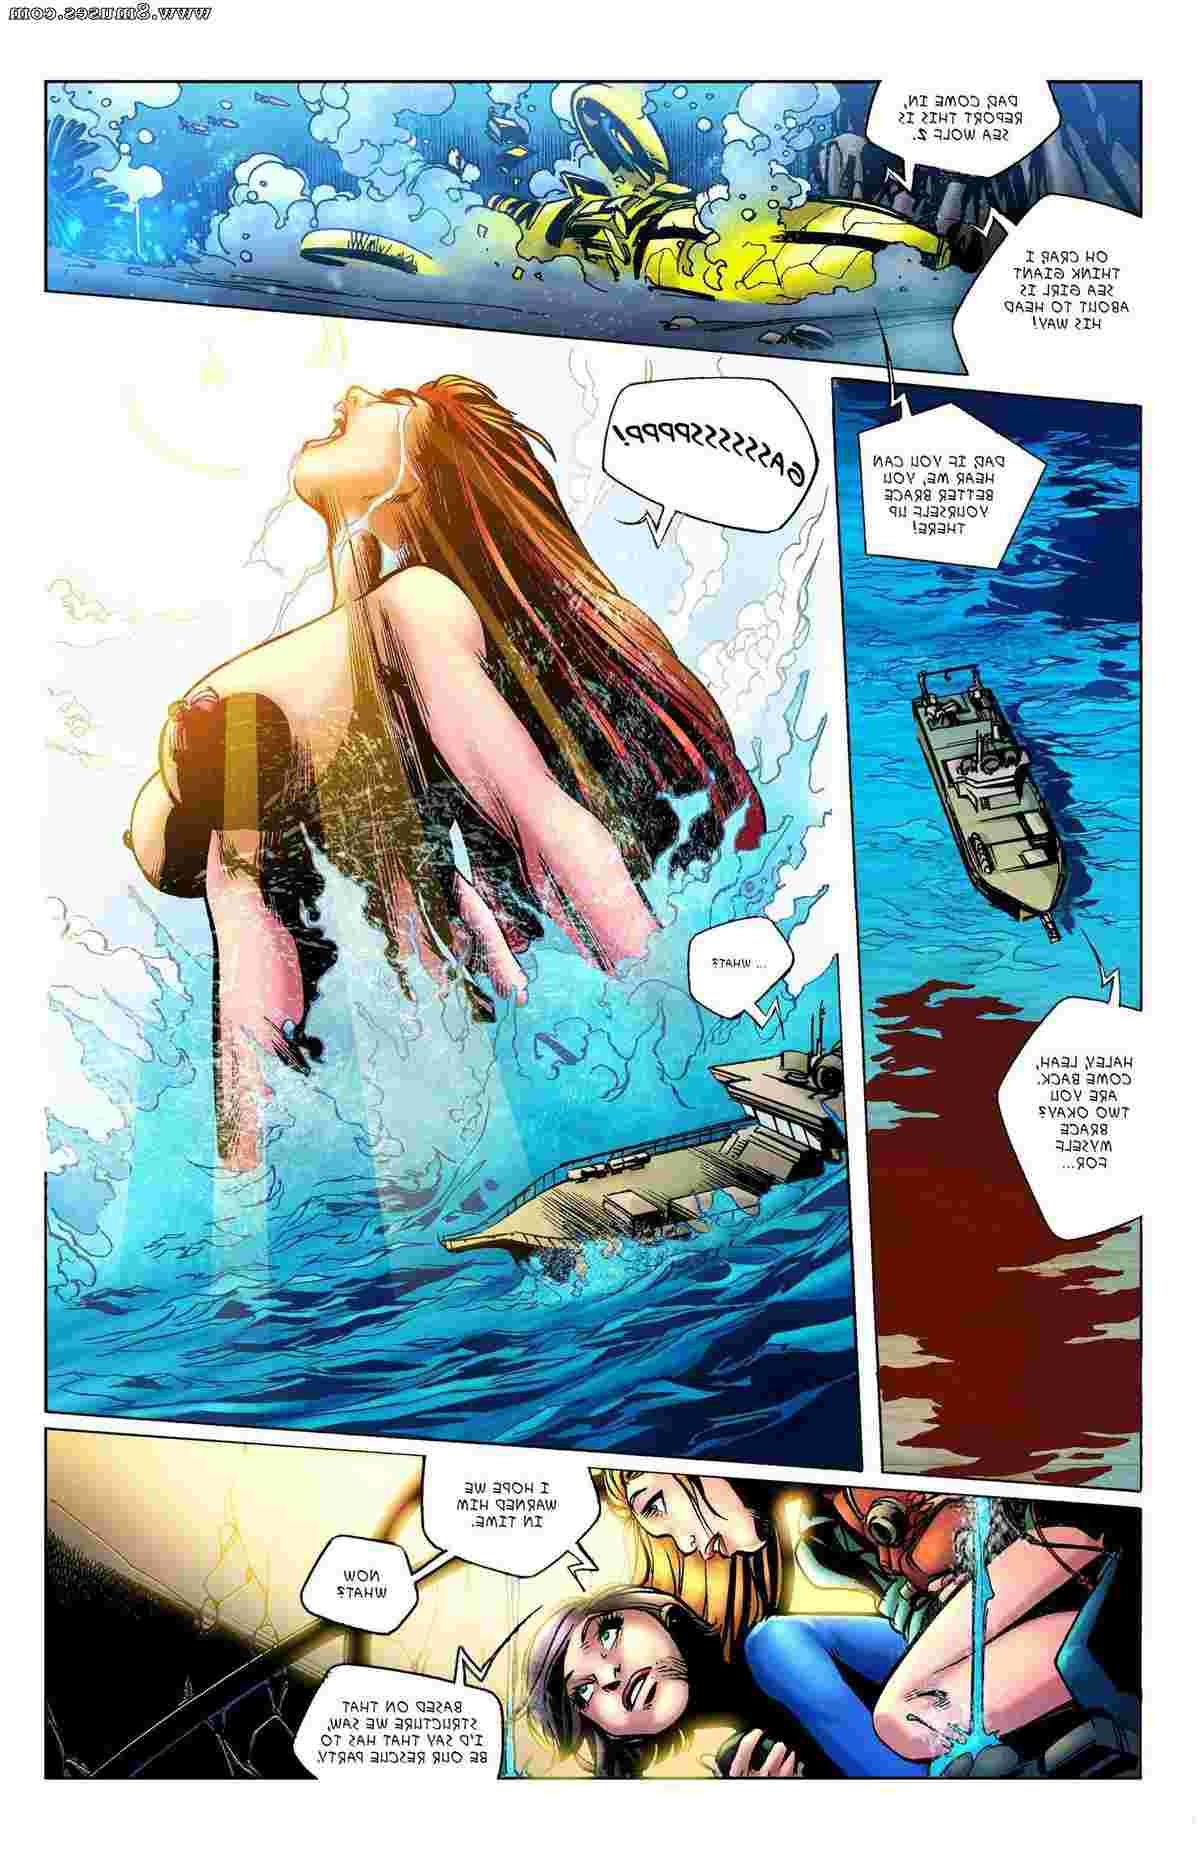 Giantess-Club-Comics/Bubbling-Up-from-the-Abyss Bubbling_Up_from_the_Abyss__8muses_-_Sex_and_Porn_Comics_35.jpg